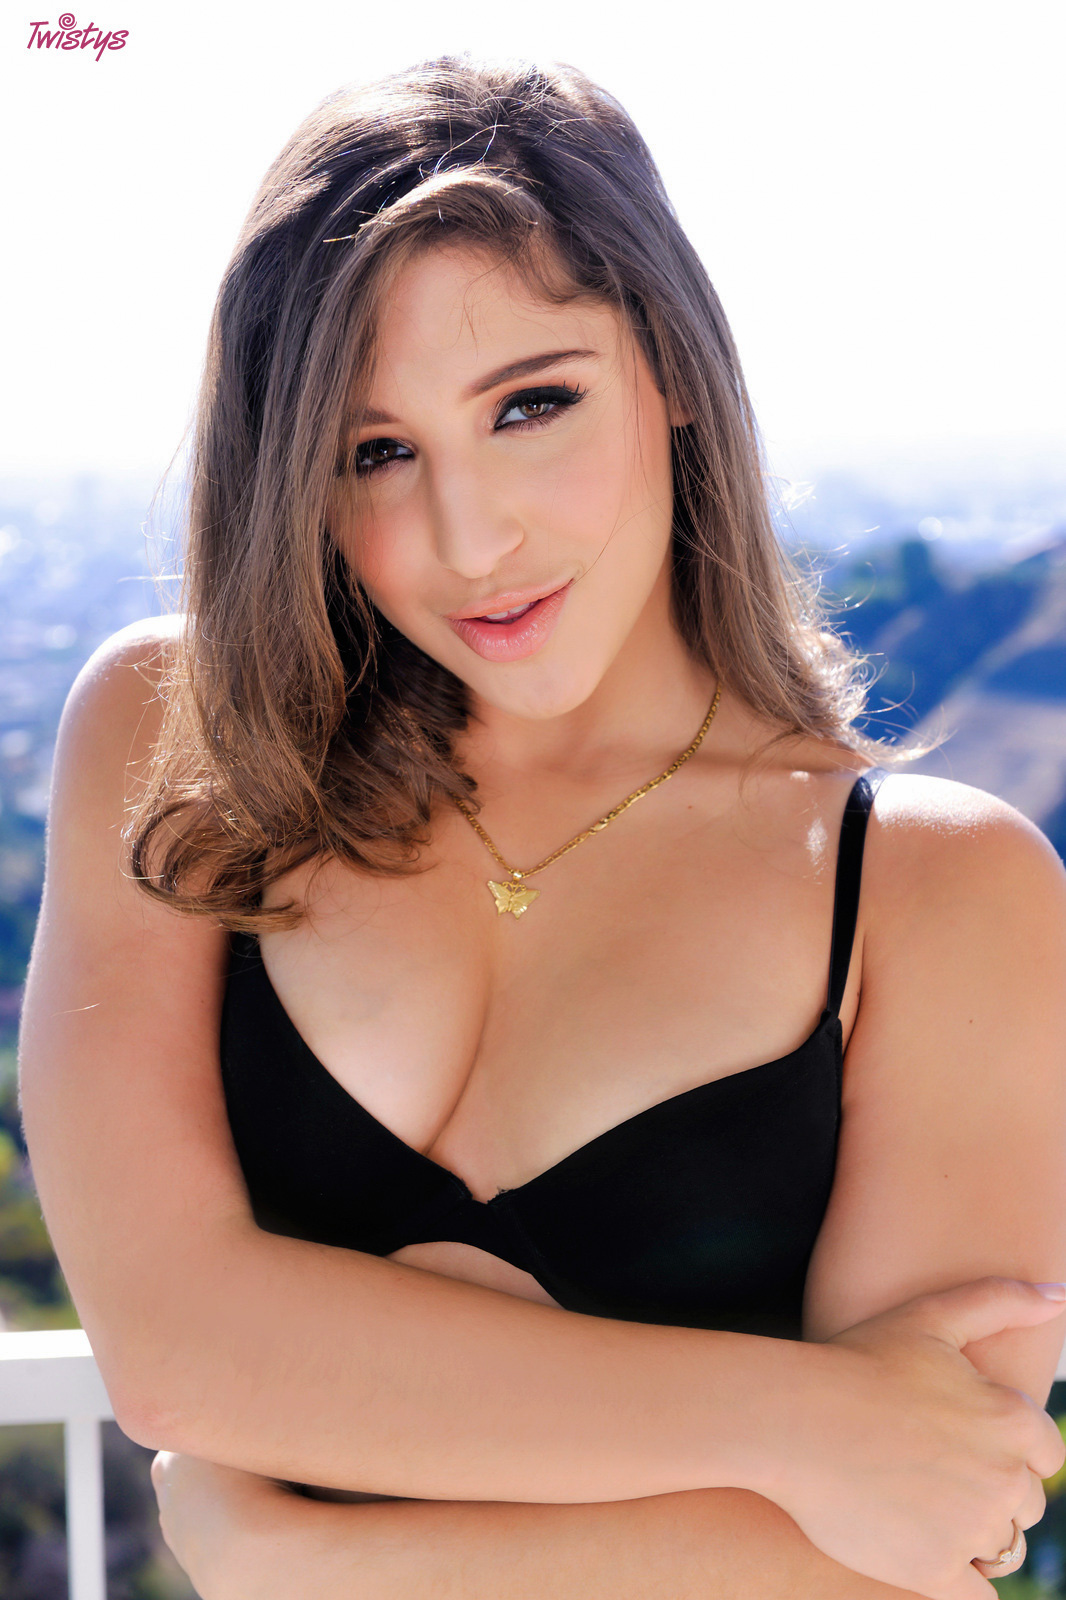 The View!.. featuring Abella Danger | Twistys.com